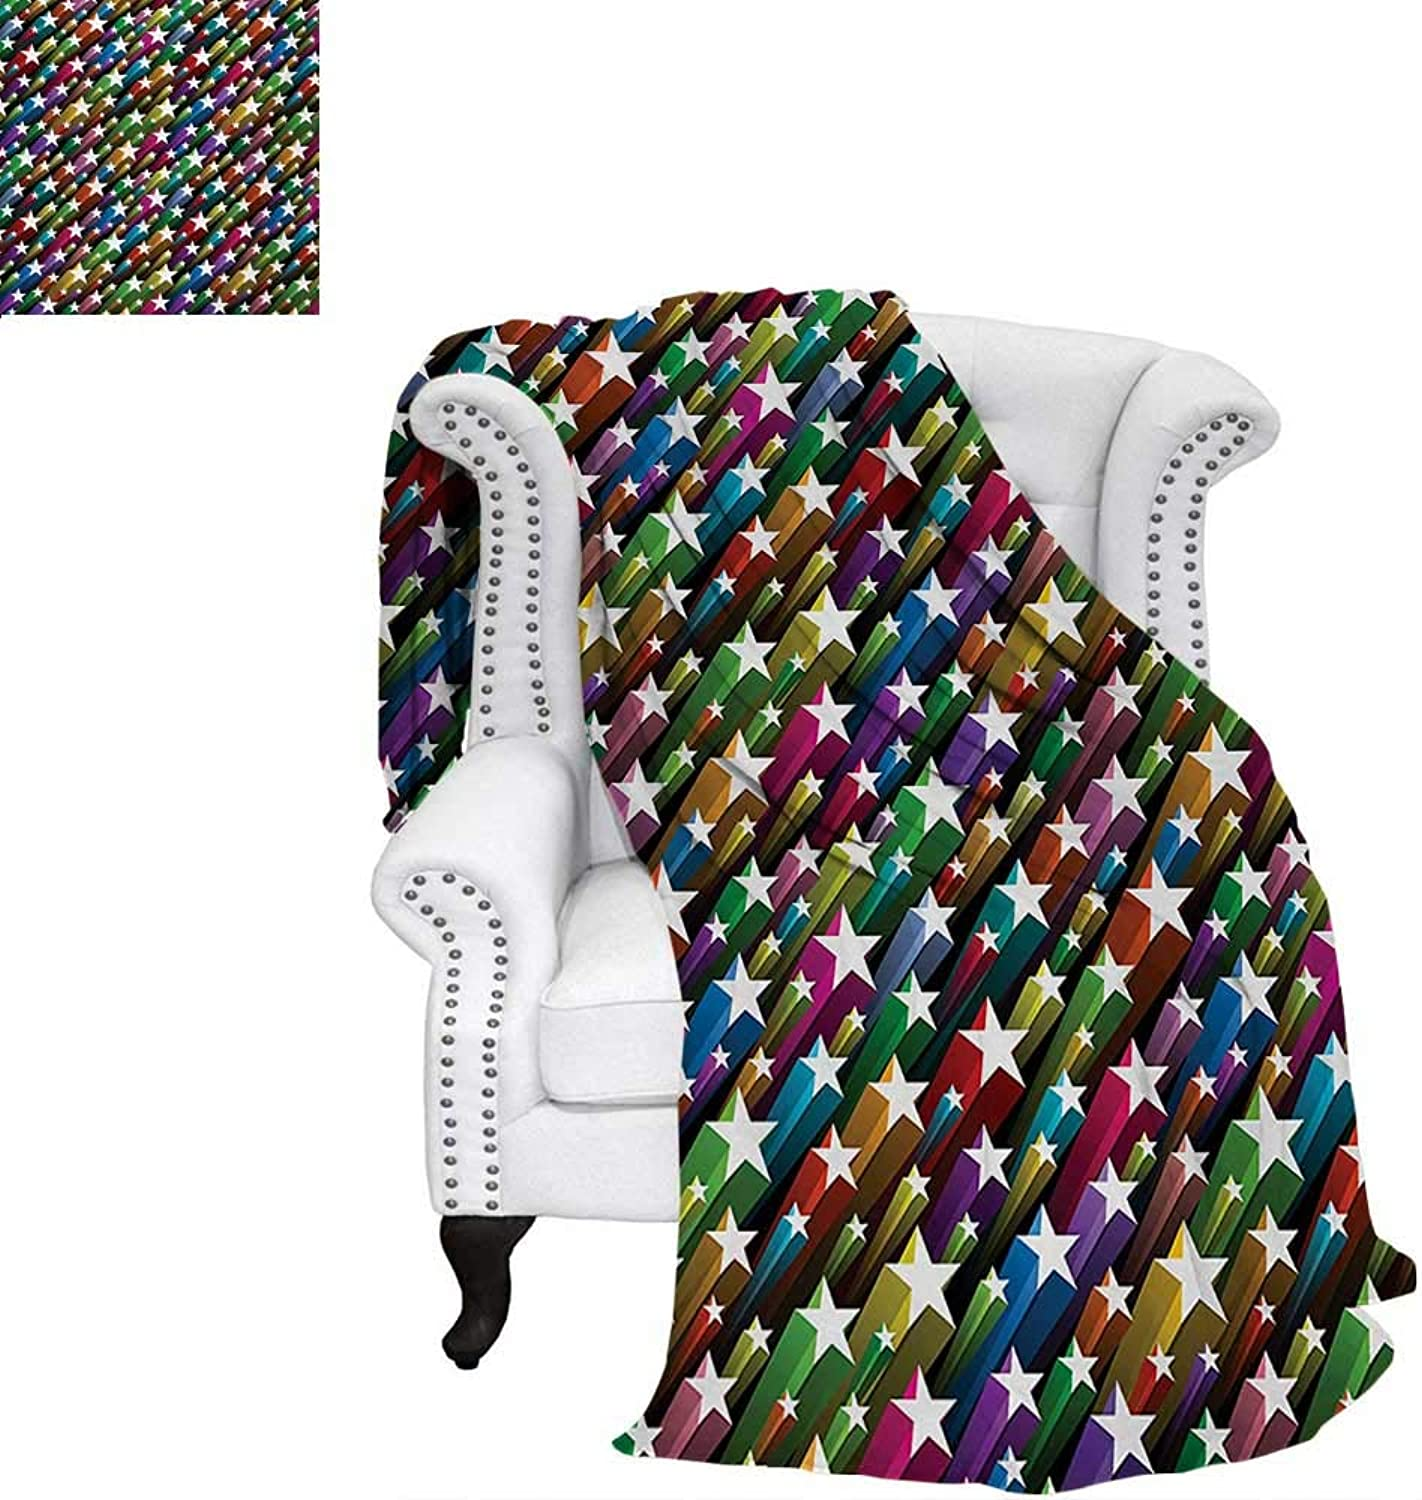 Warmfamily colorful Summer Quilt Comforter colorful Stars Pattern Celebration Theme Disco and Nightclubs Artistic Jolly Fun Digital Printing Blanket 60 x50  Multicolor